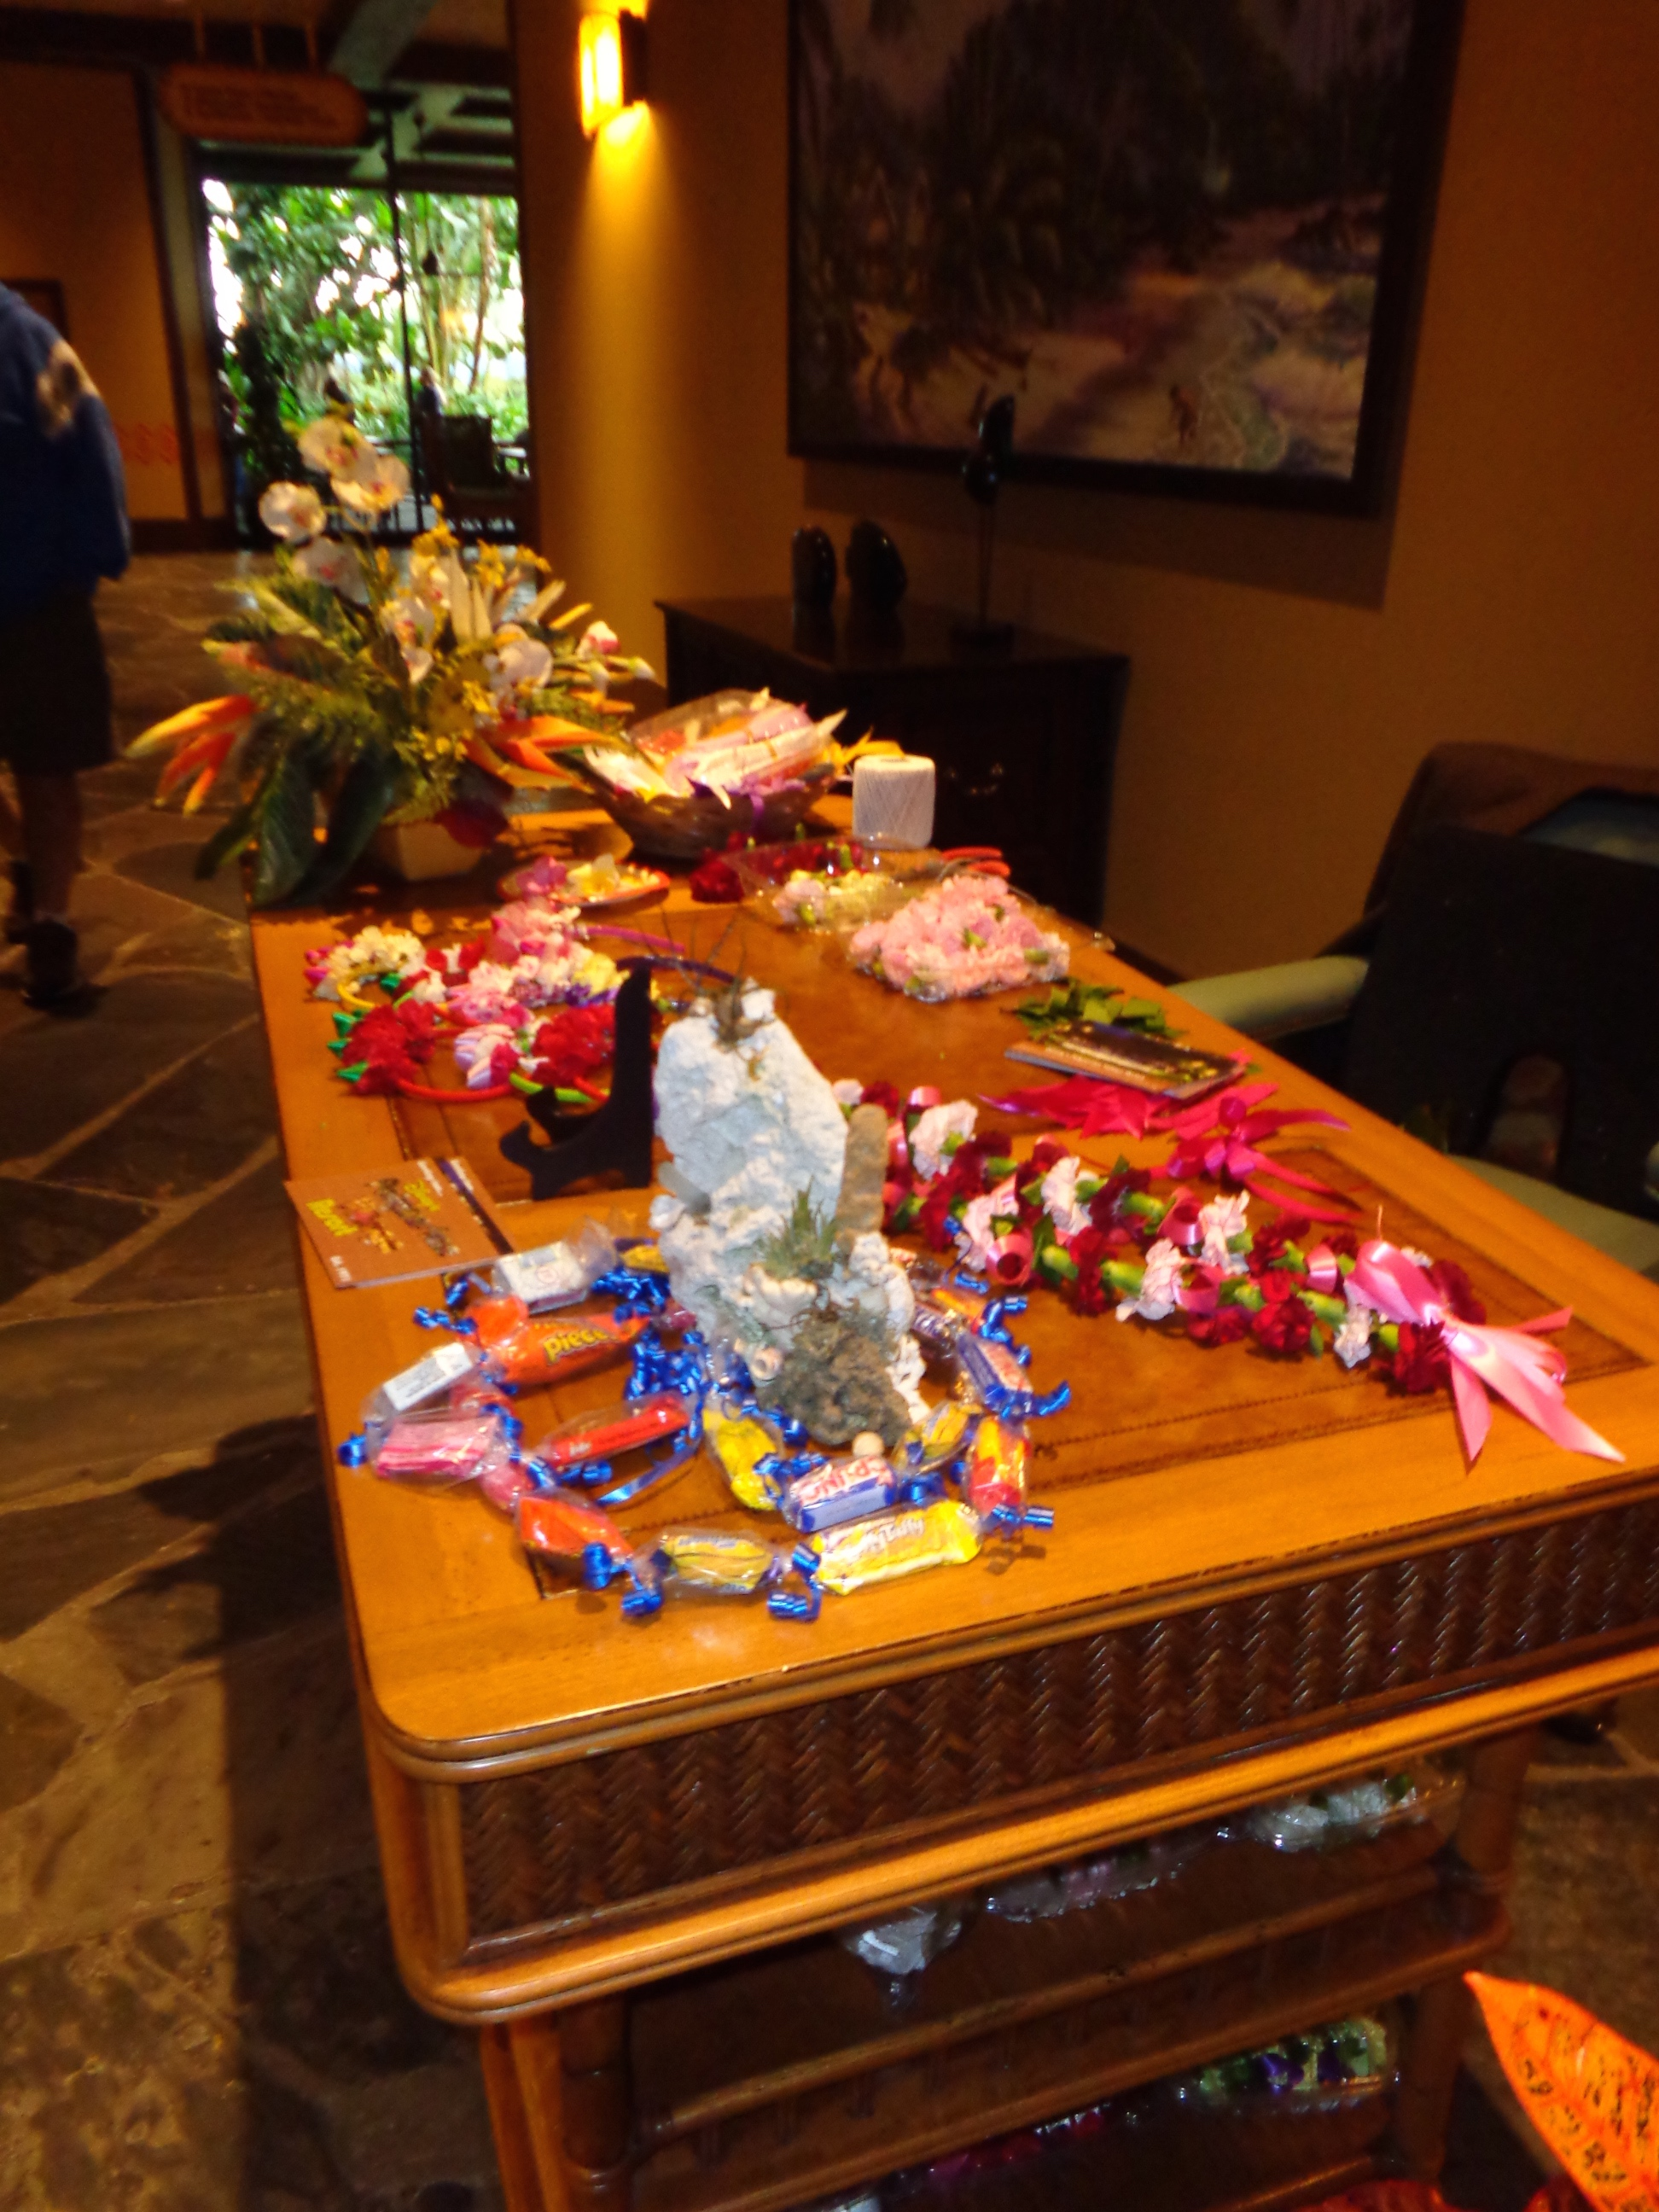 Polynesian resort elly and carolines magical moments her lei making table with beautiful finished leis for sale buycottarizona Gallery